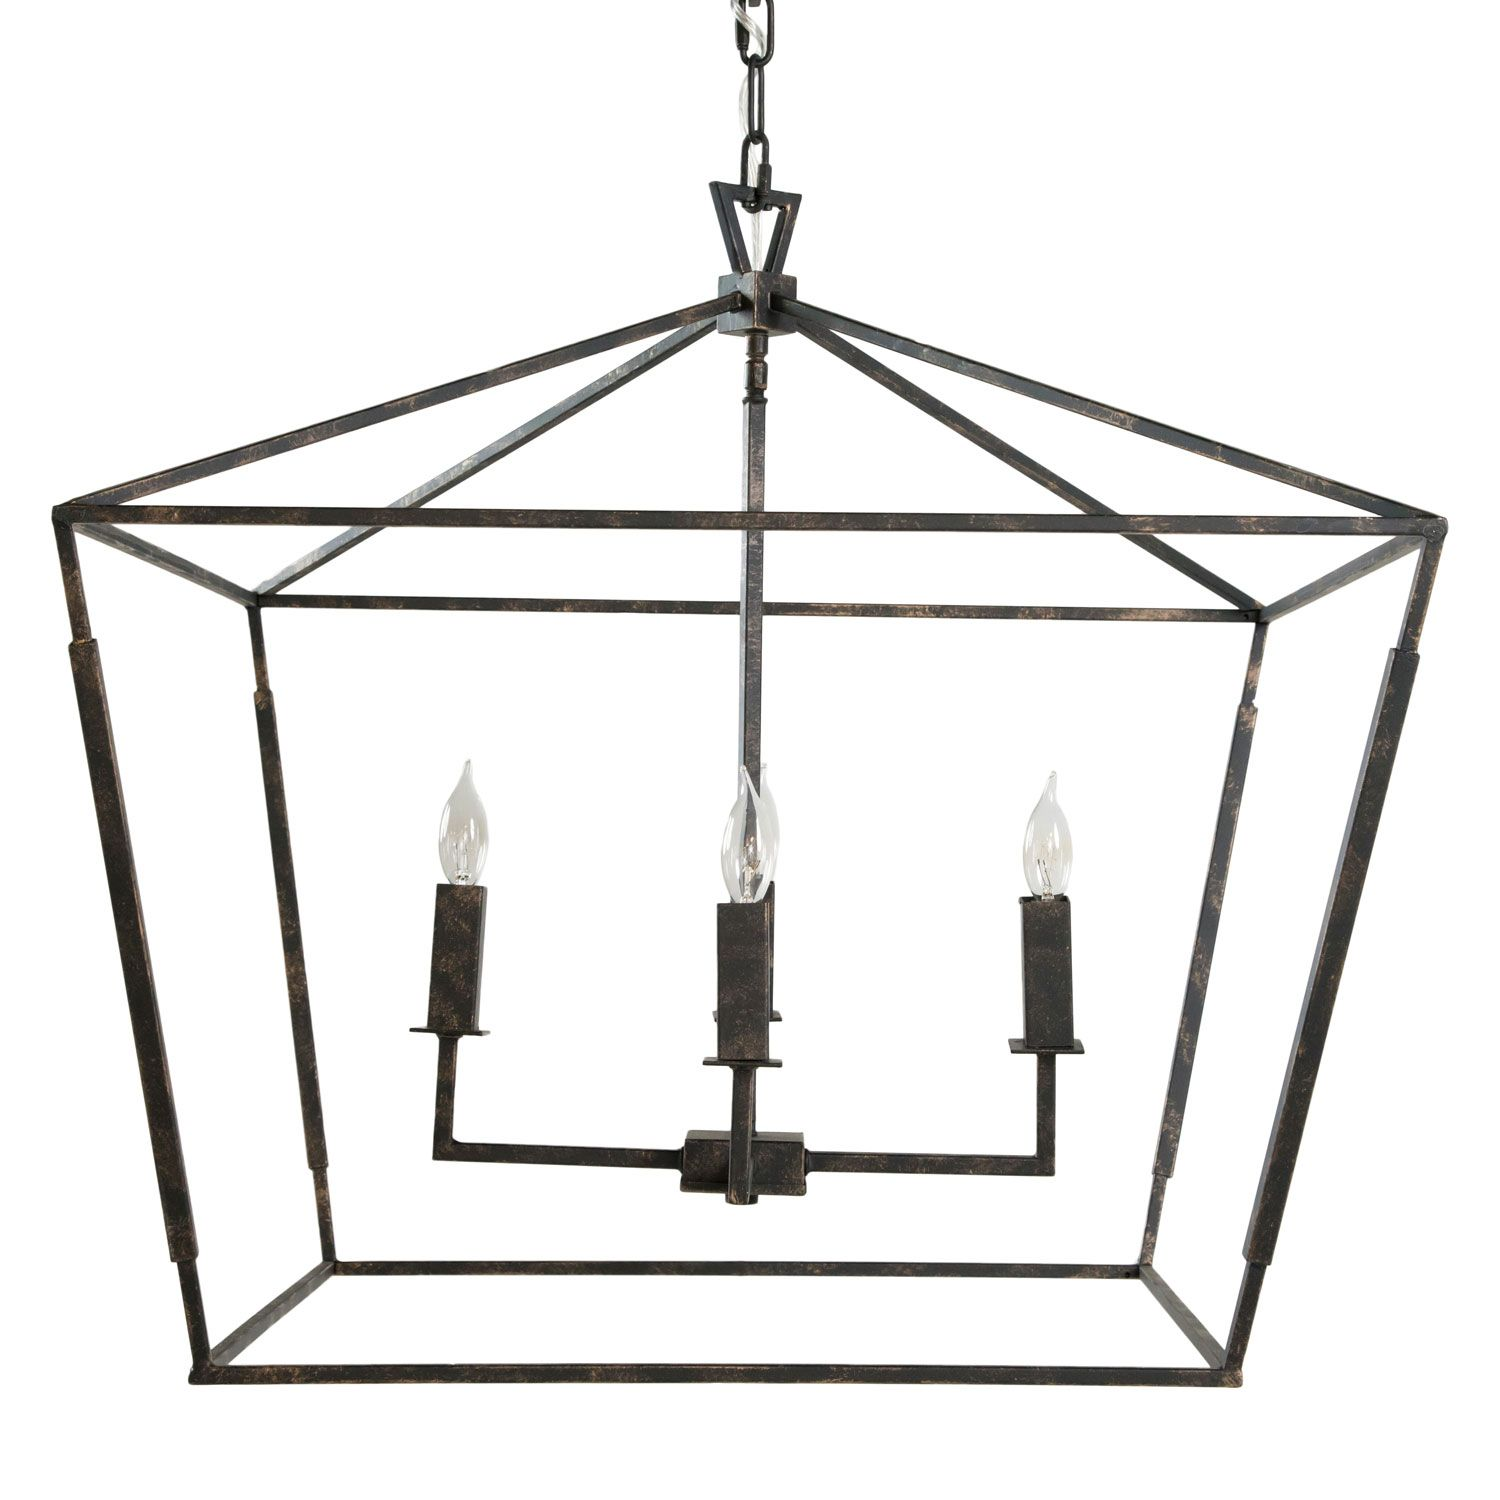 Small Simple Chandelier Sleek Versatility Defines The Arnold Small Chandelier From Gabby